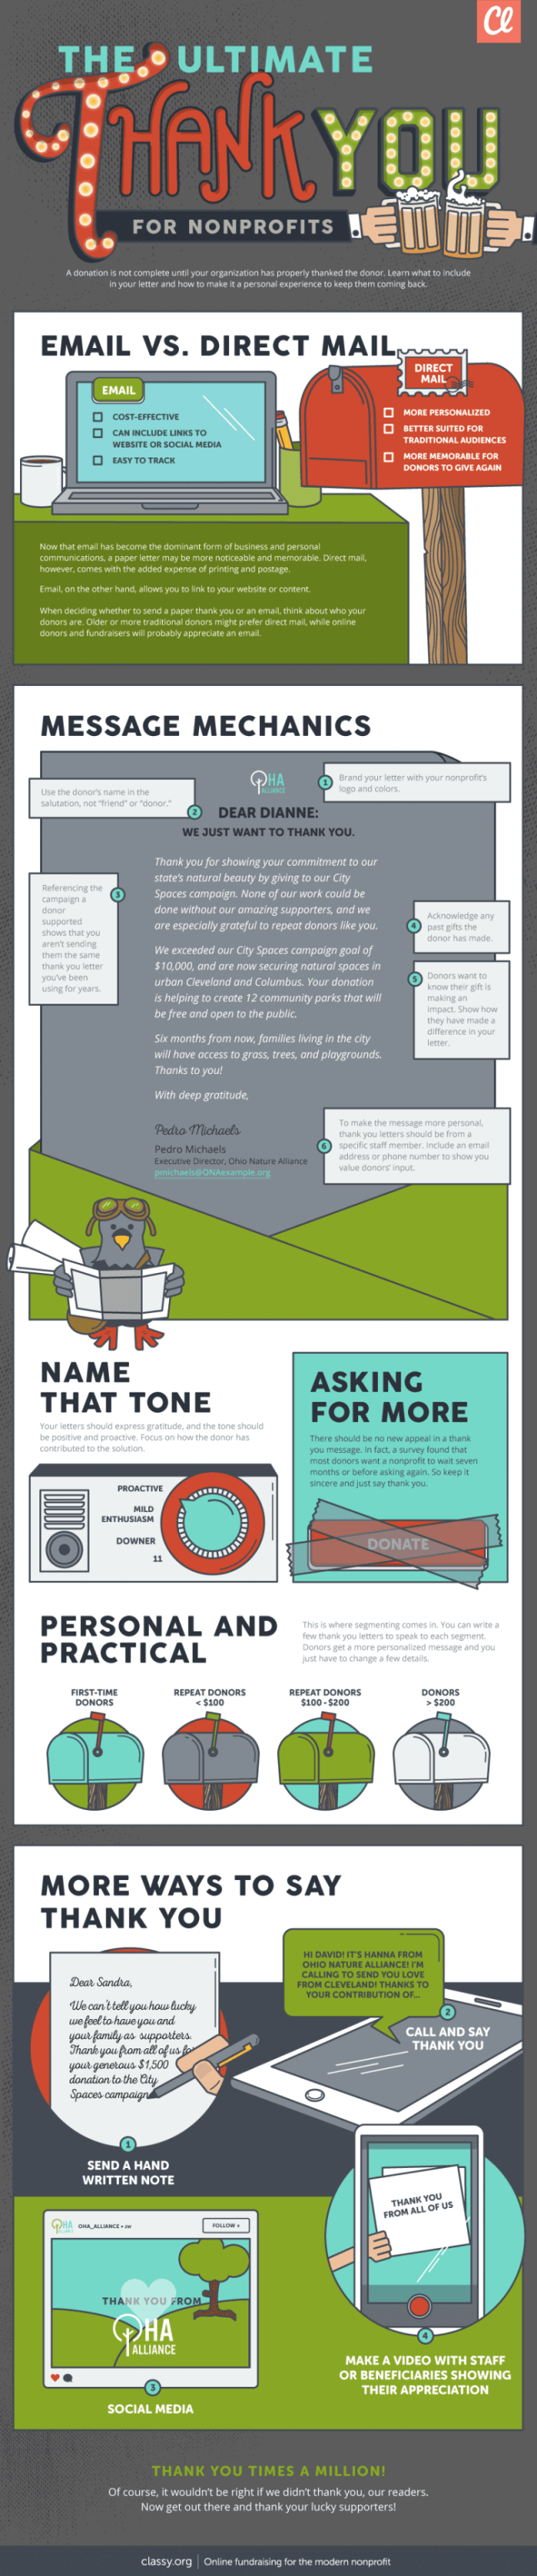 thank you messages infographic